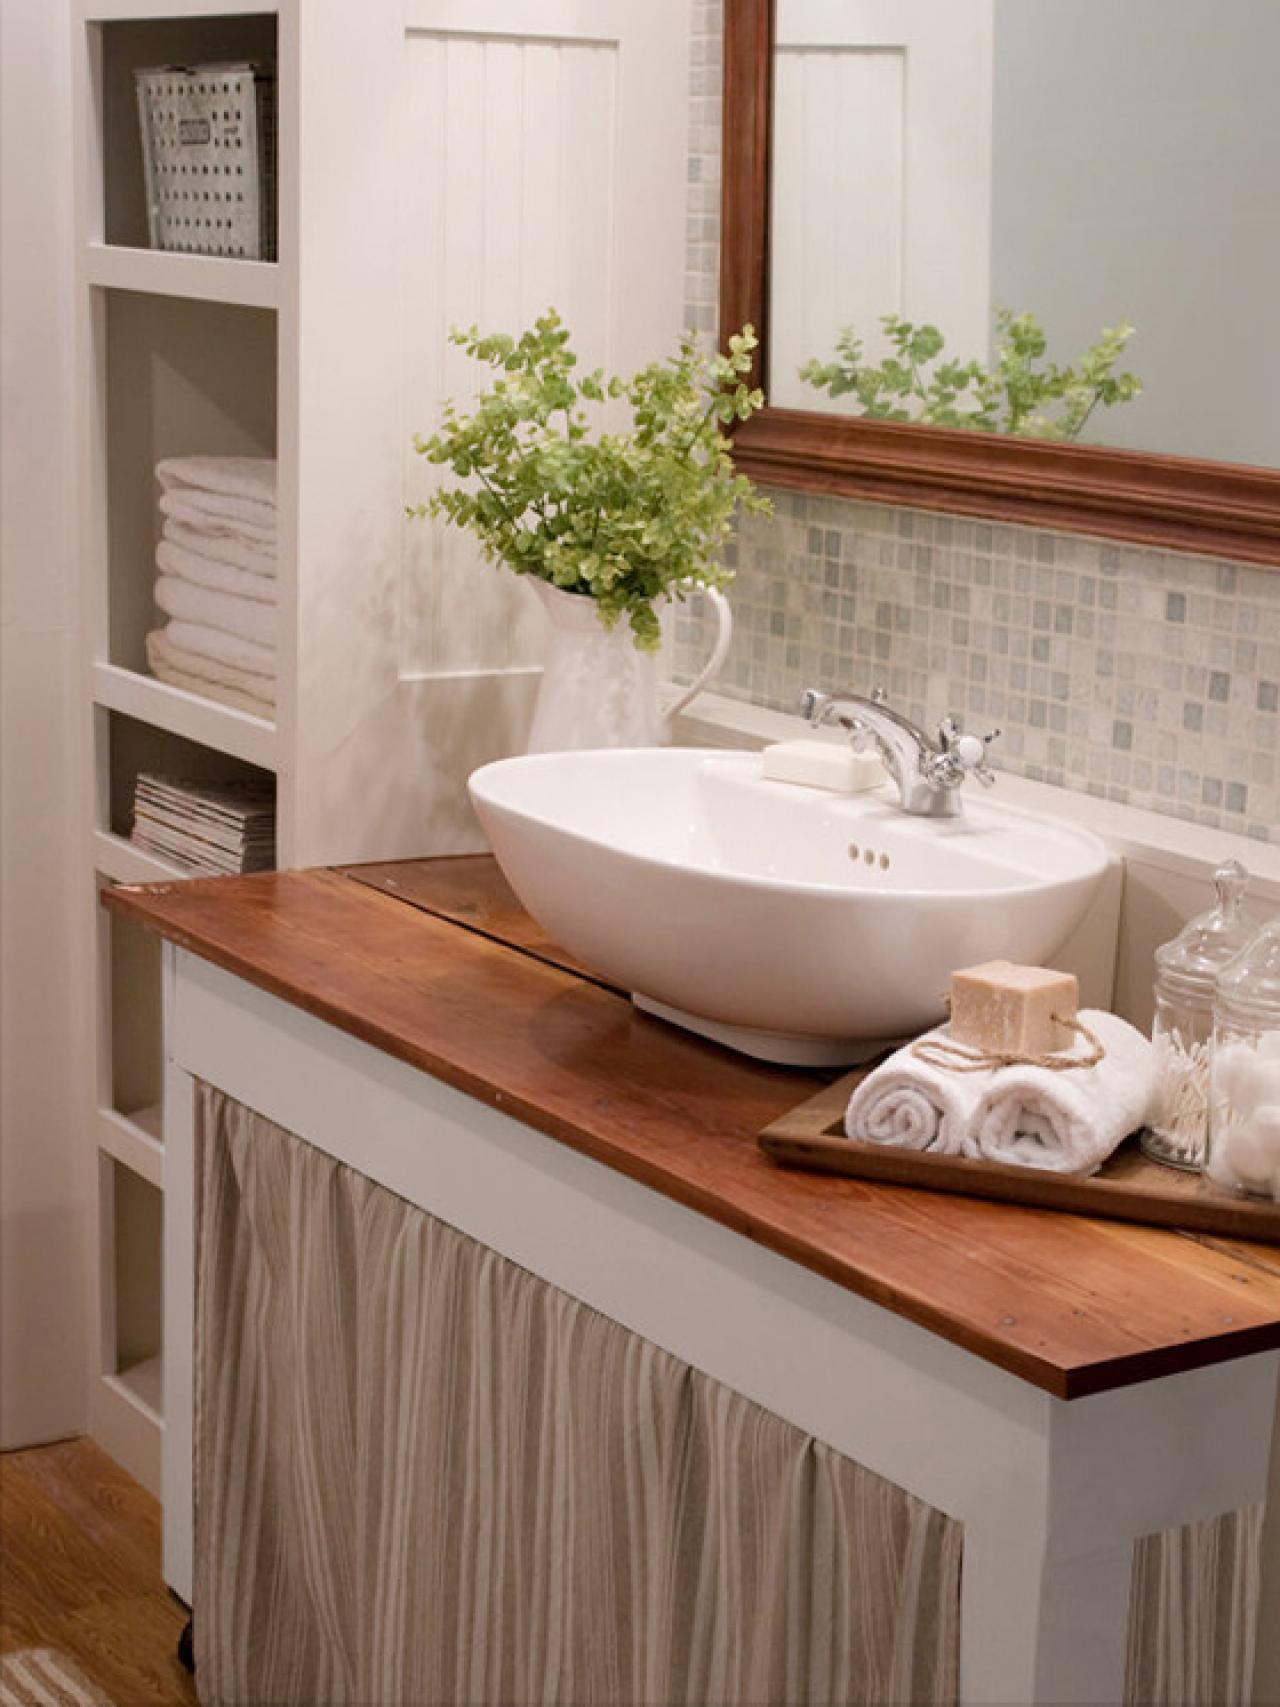 Small Bathtub Ideas And Options Pictures Tips From HGTV HGTV - Flip flop bathroom decor for small bathroom ideas